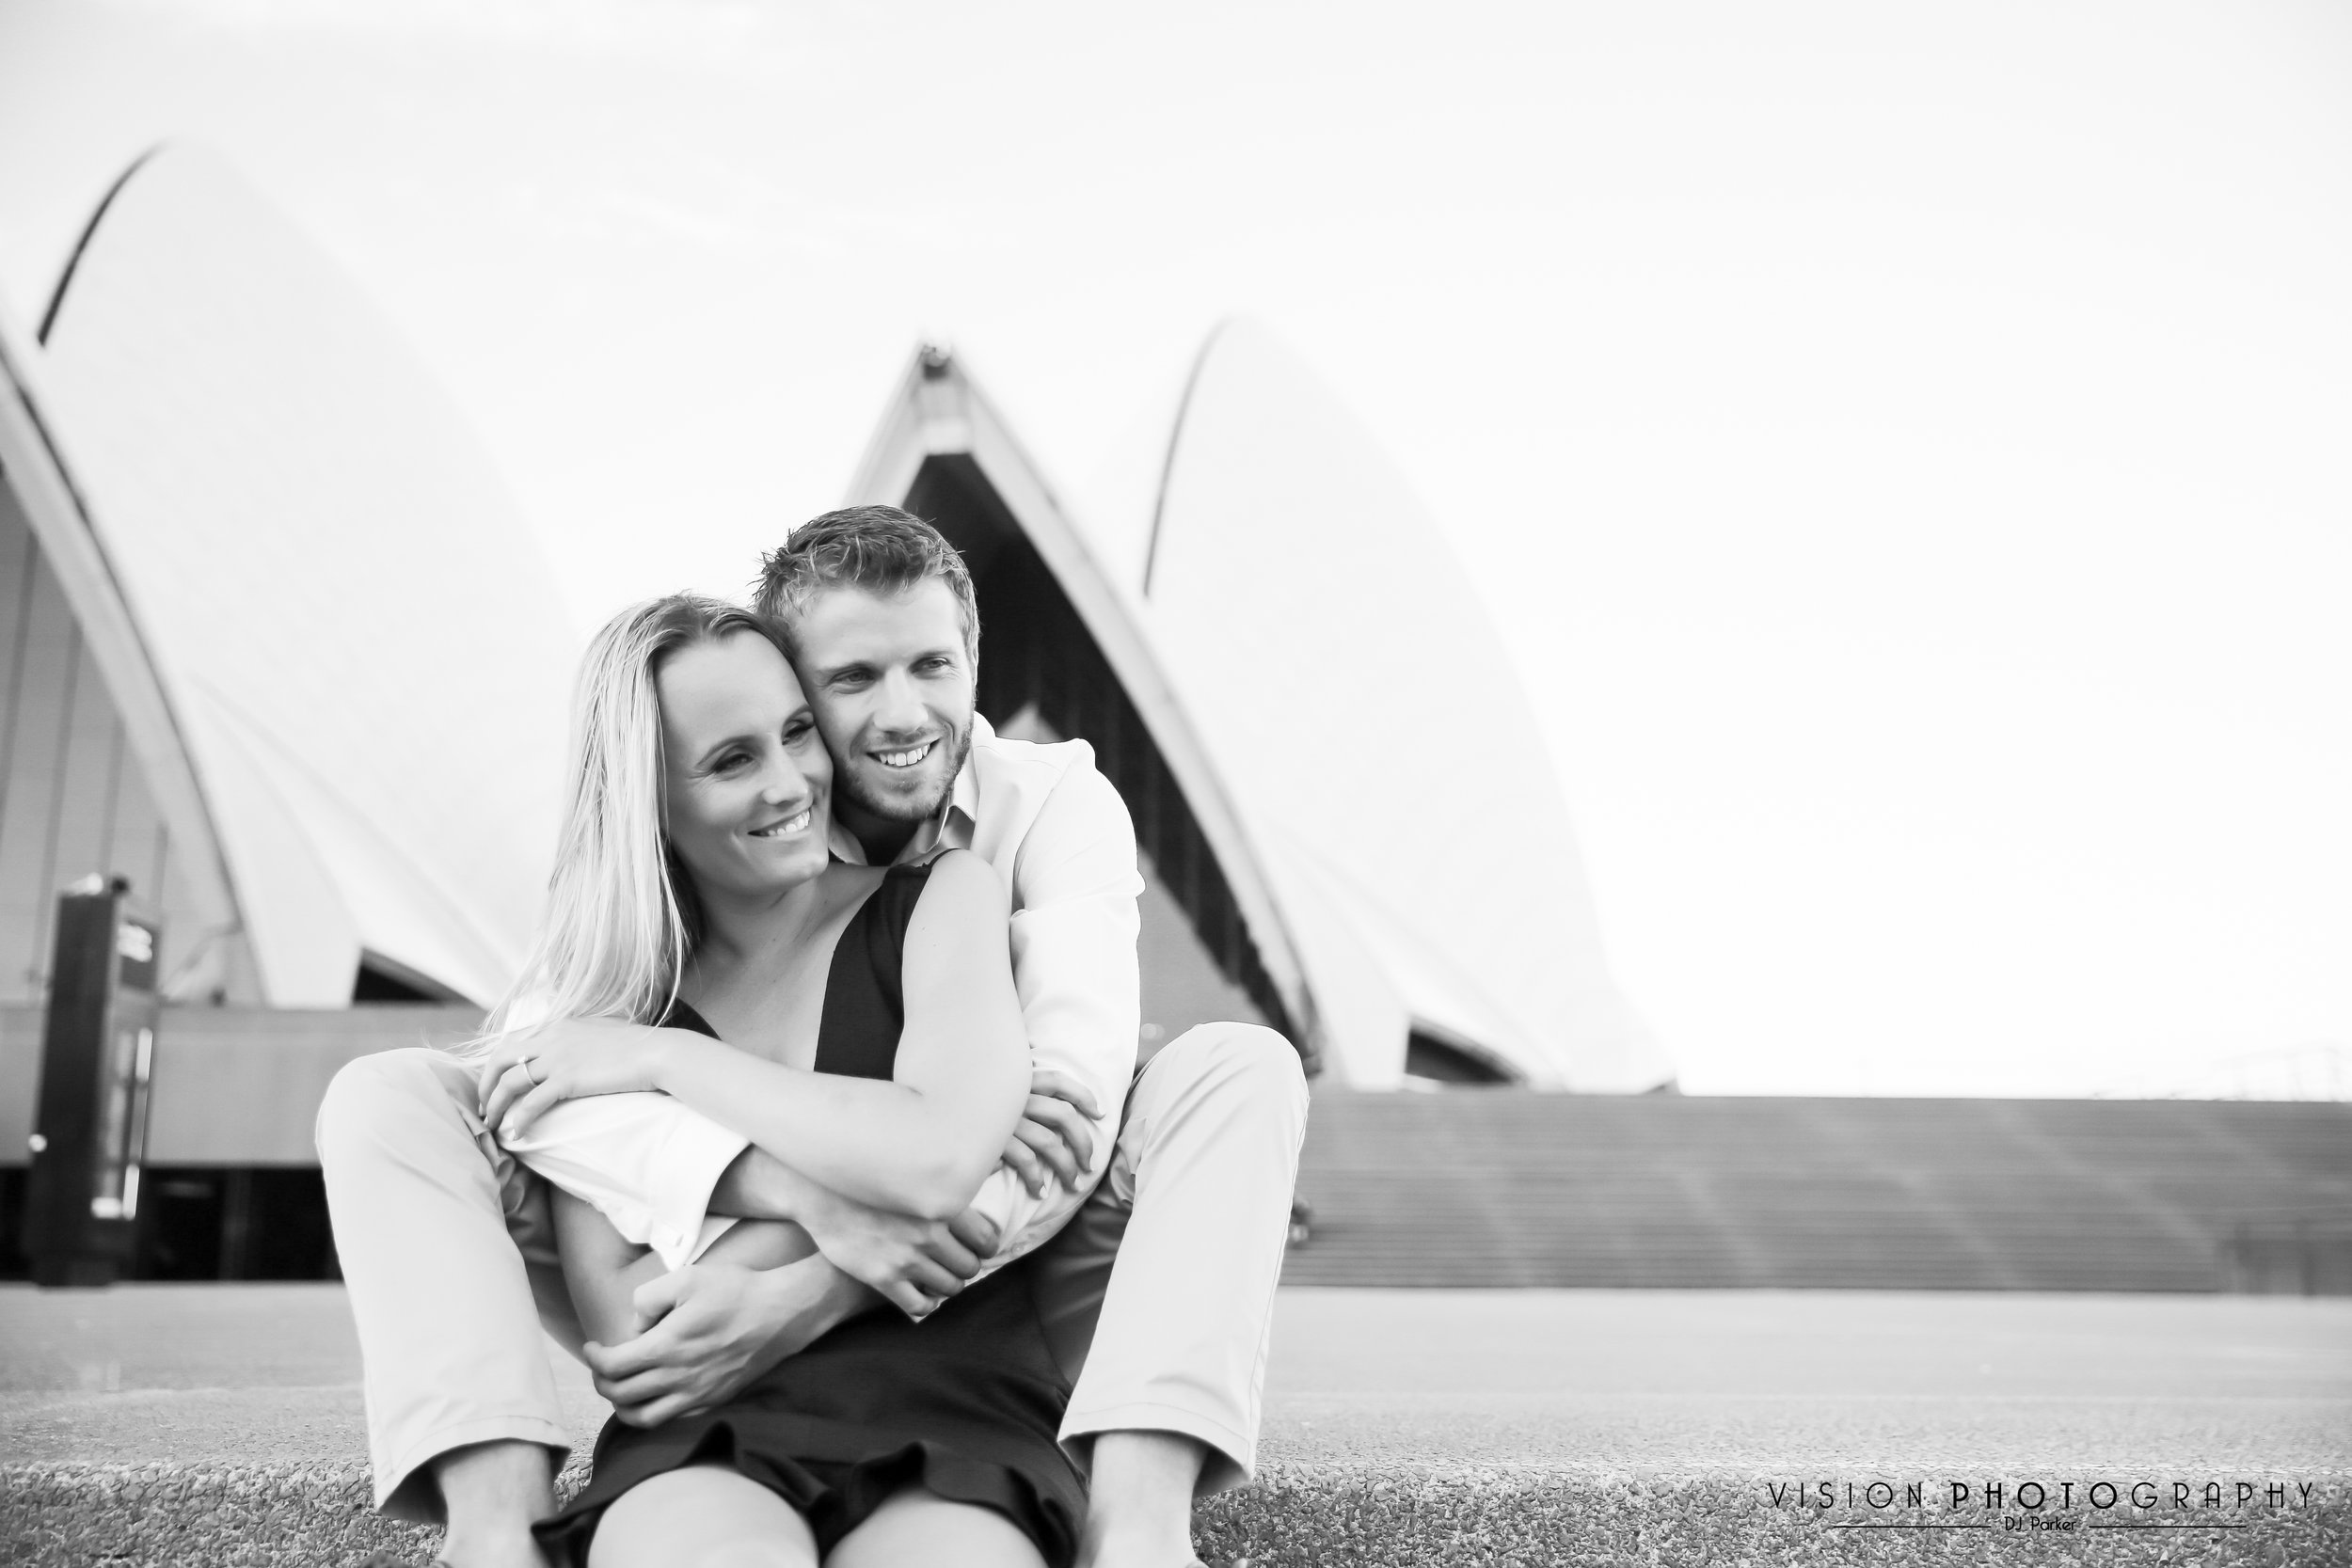 Destination Engagement Photo Shoot Vision Photography Daniel Parker Natural Candid Asia Singapore